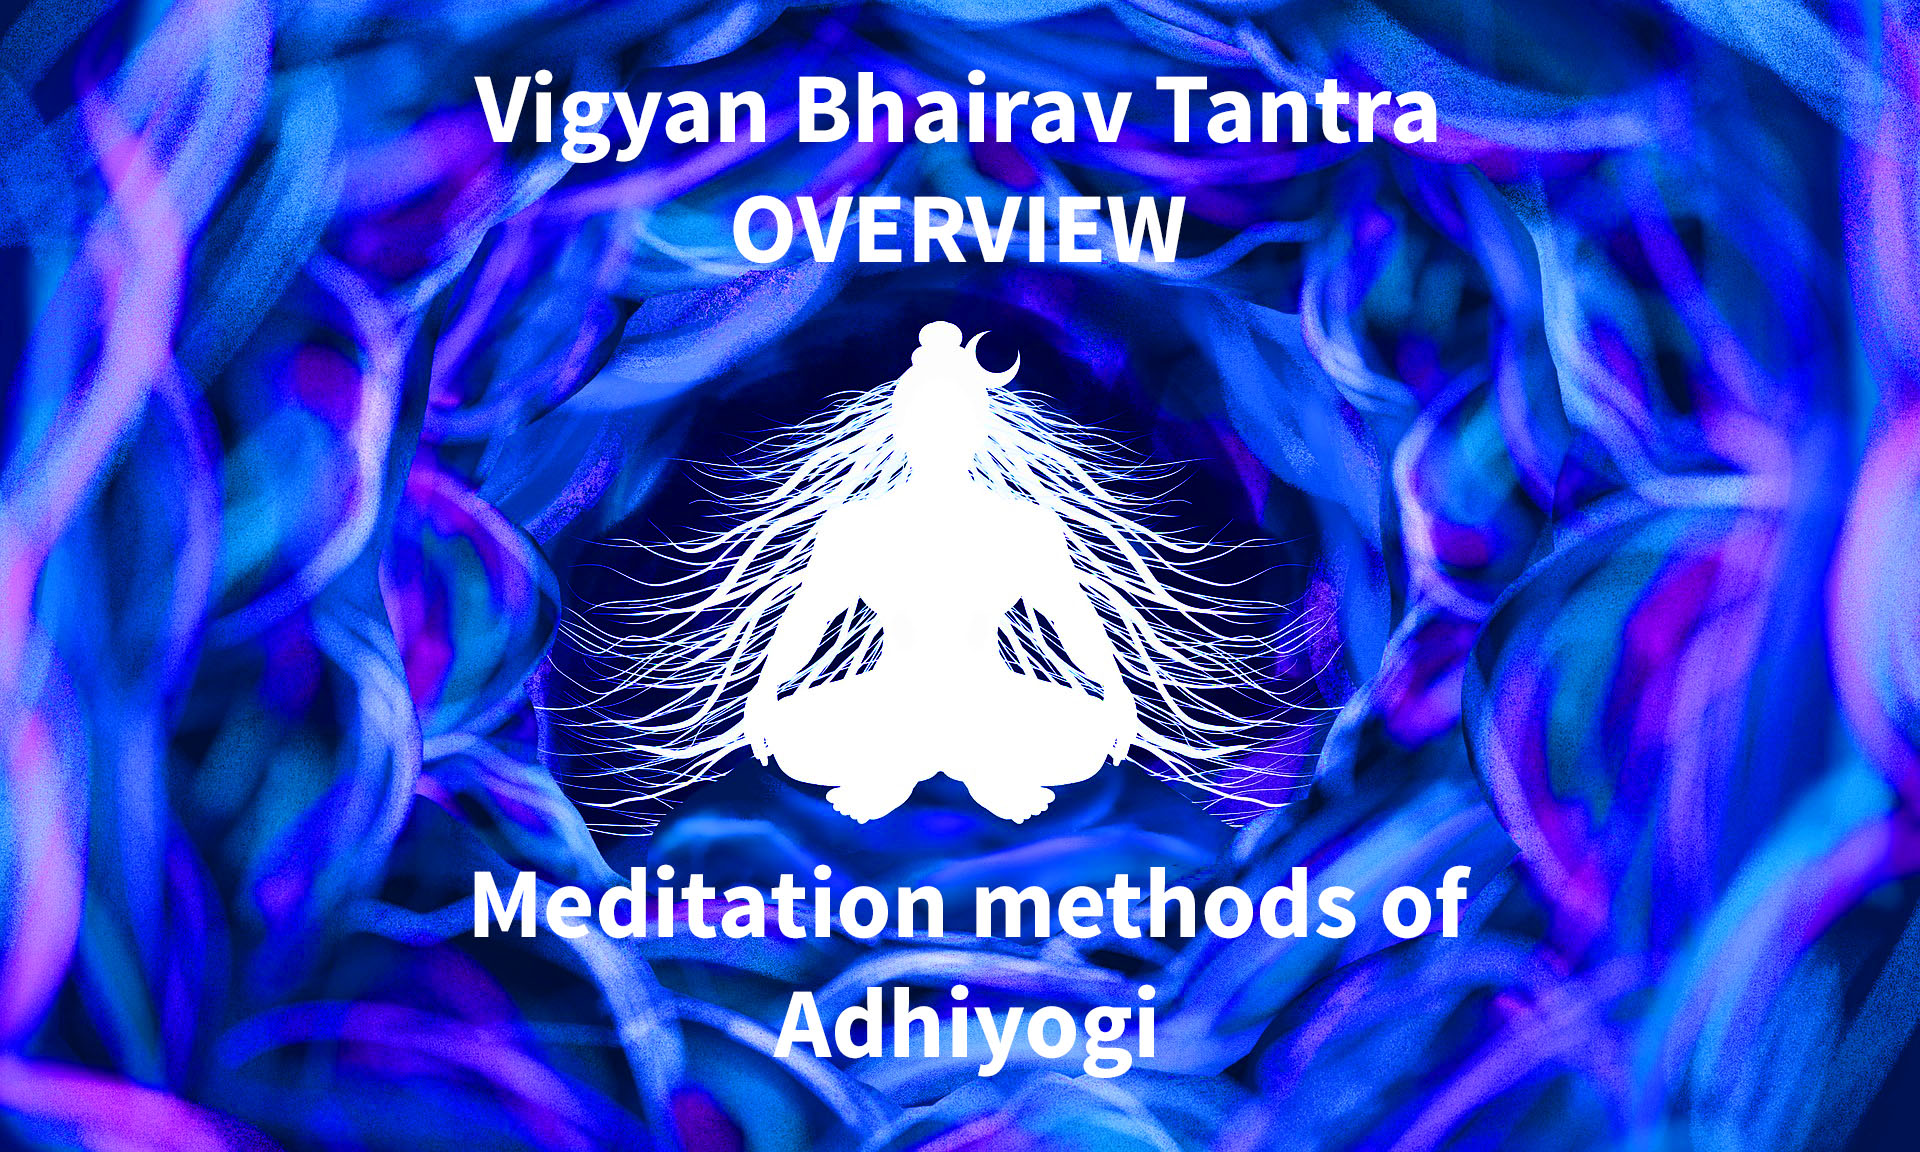 112 Methods of Meditation, Vigyan Bhairav Tantra Simplified